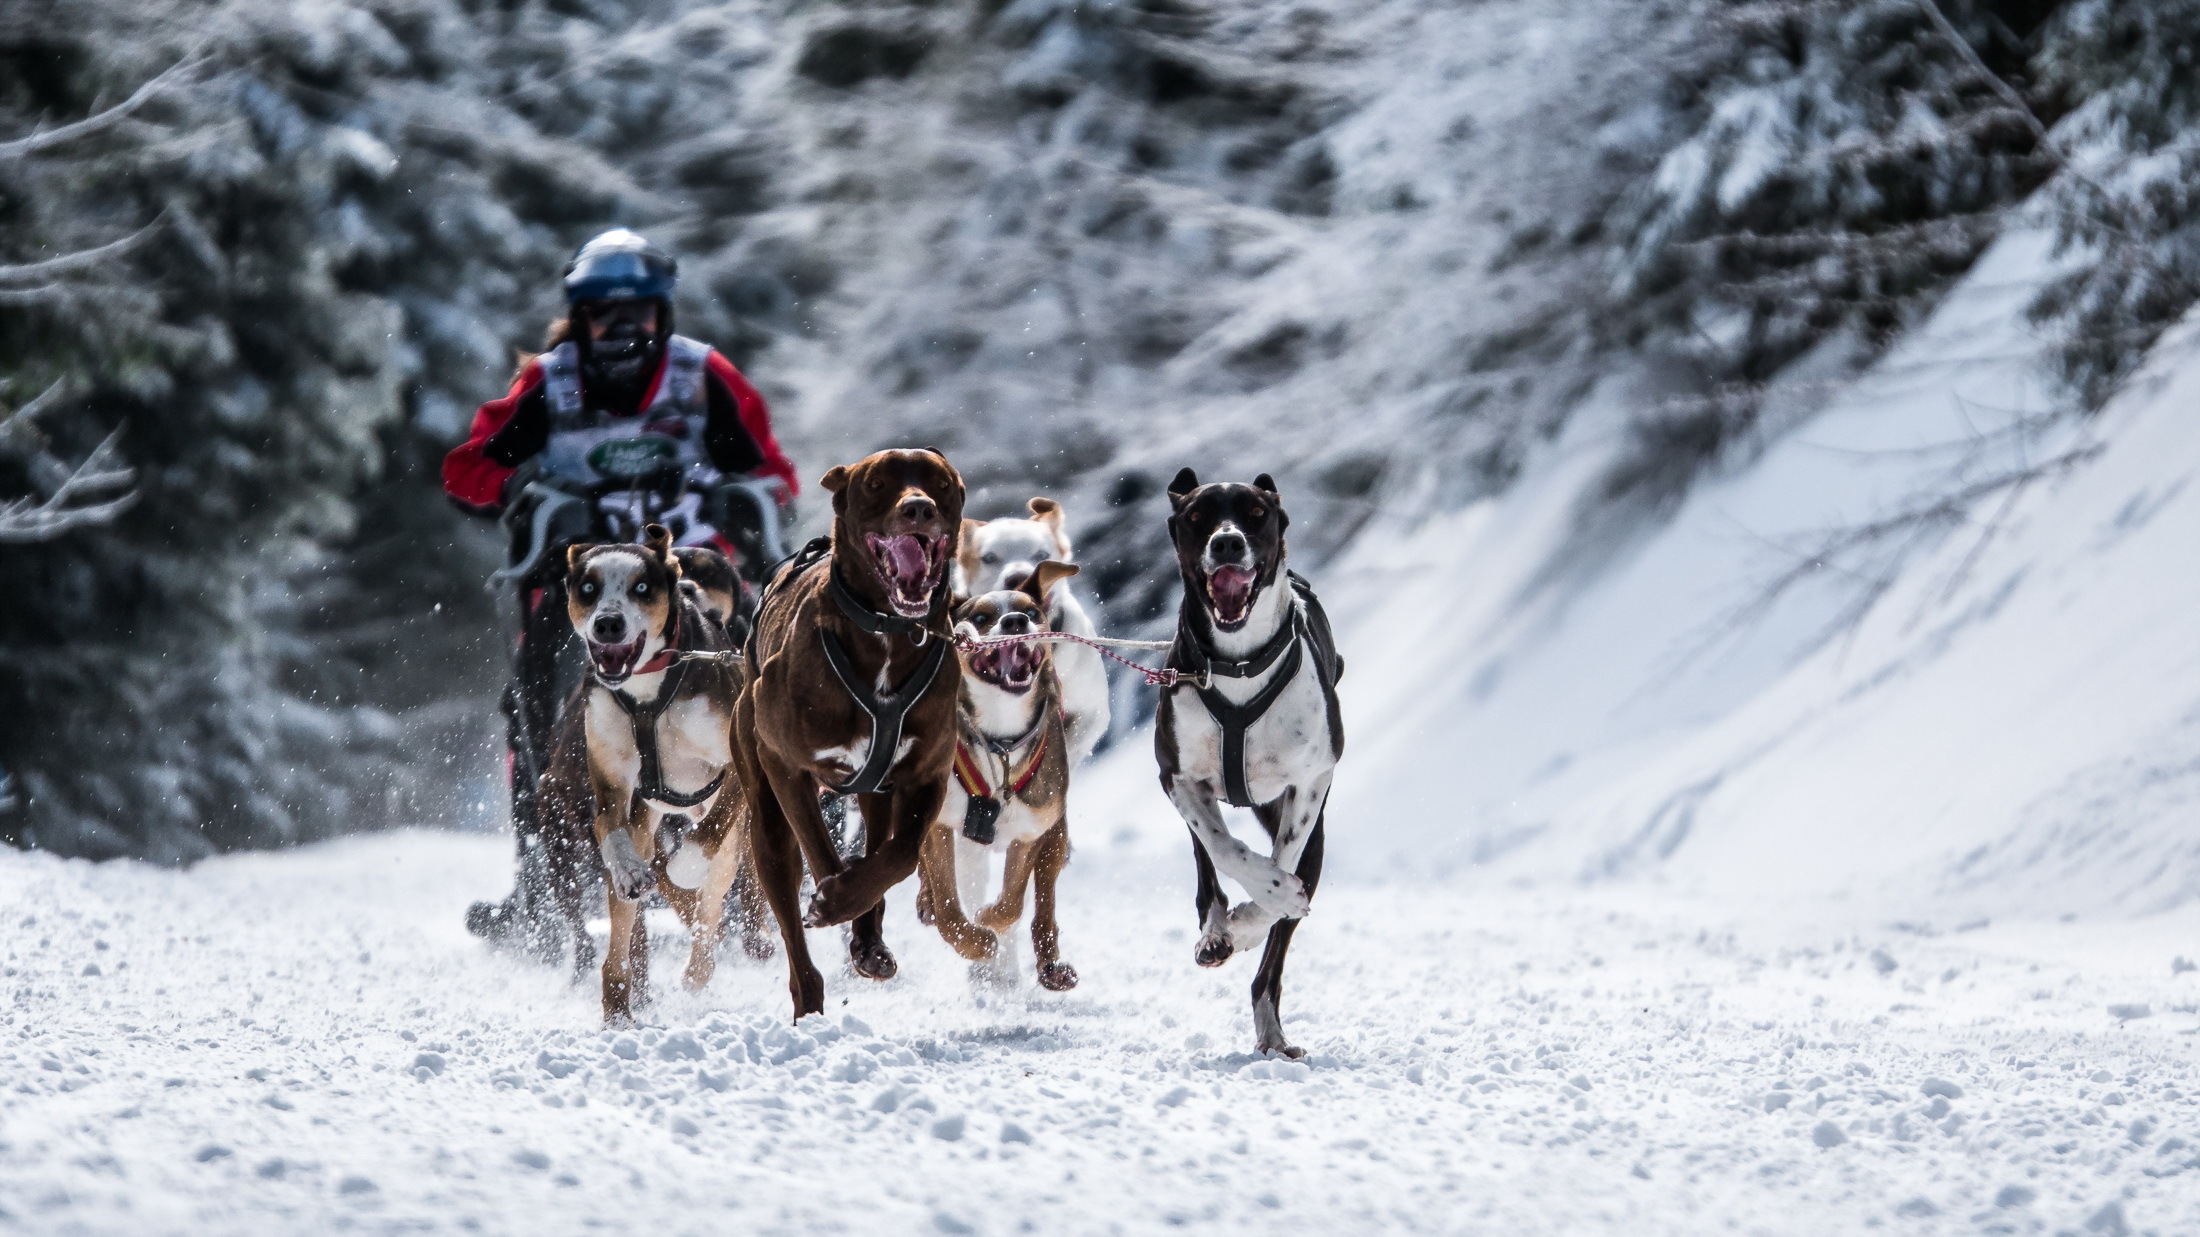 143115 Screensavers and Wallpapers Races for phone. Download Sports, Races, Snow, Dog pictures for free